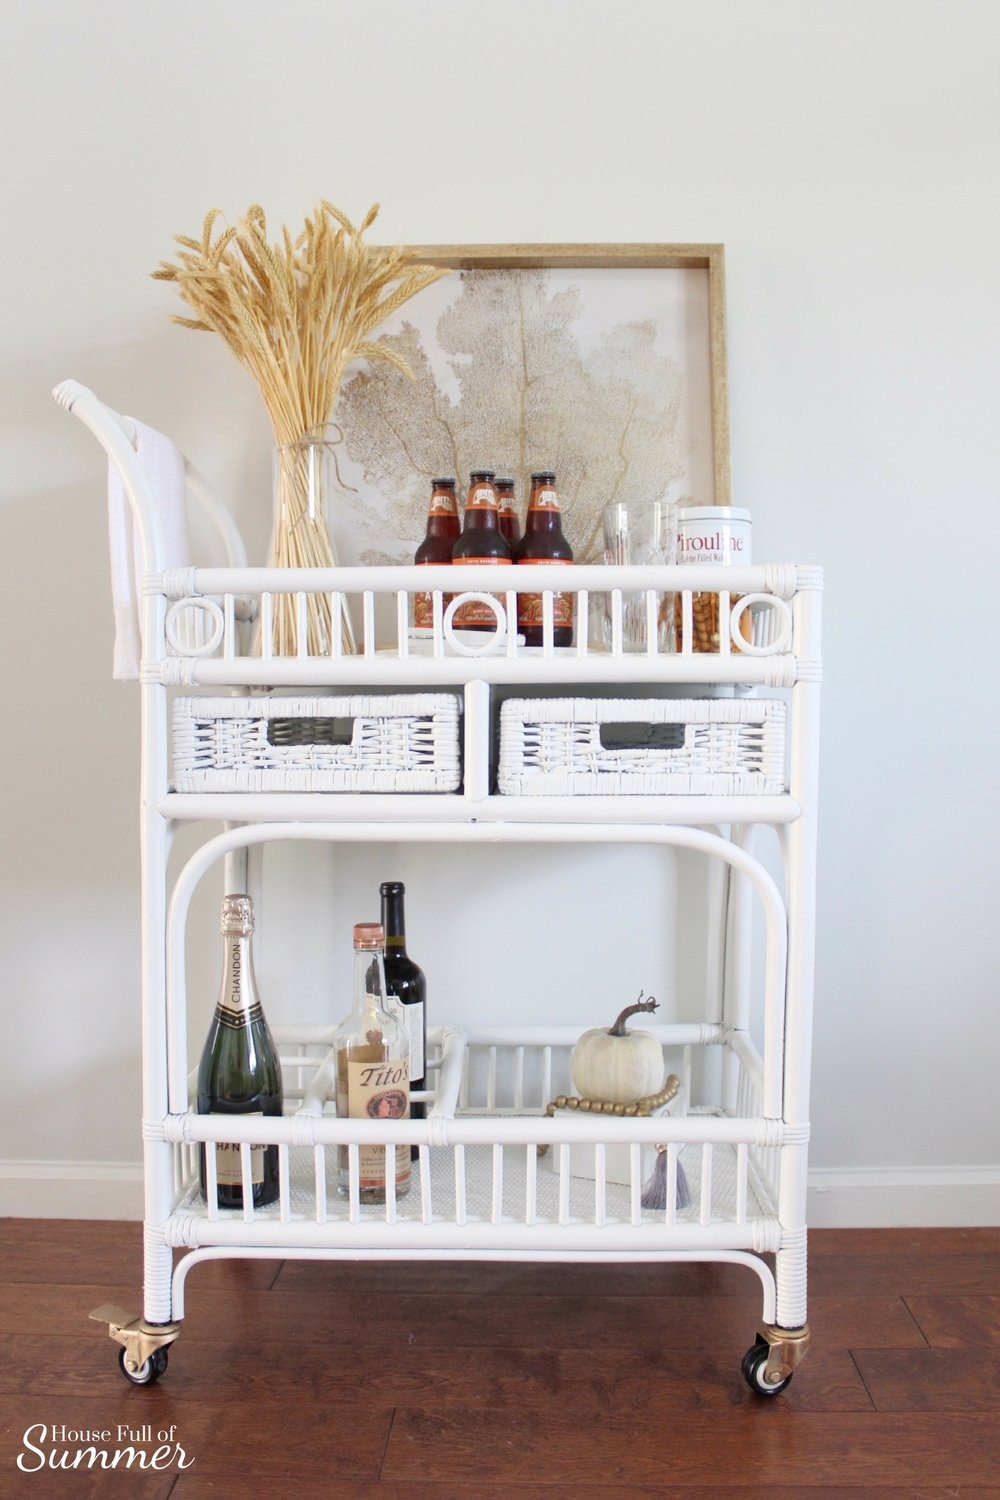 Bar Cart Styling - Warm Southern Harvest | House Full of Summer blog bar cart makeover, fall bar cart ideas, southern fall decor, simple fall decor, bar cart styling tips, thanksgiving bar cart,